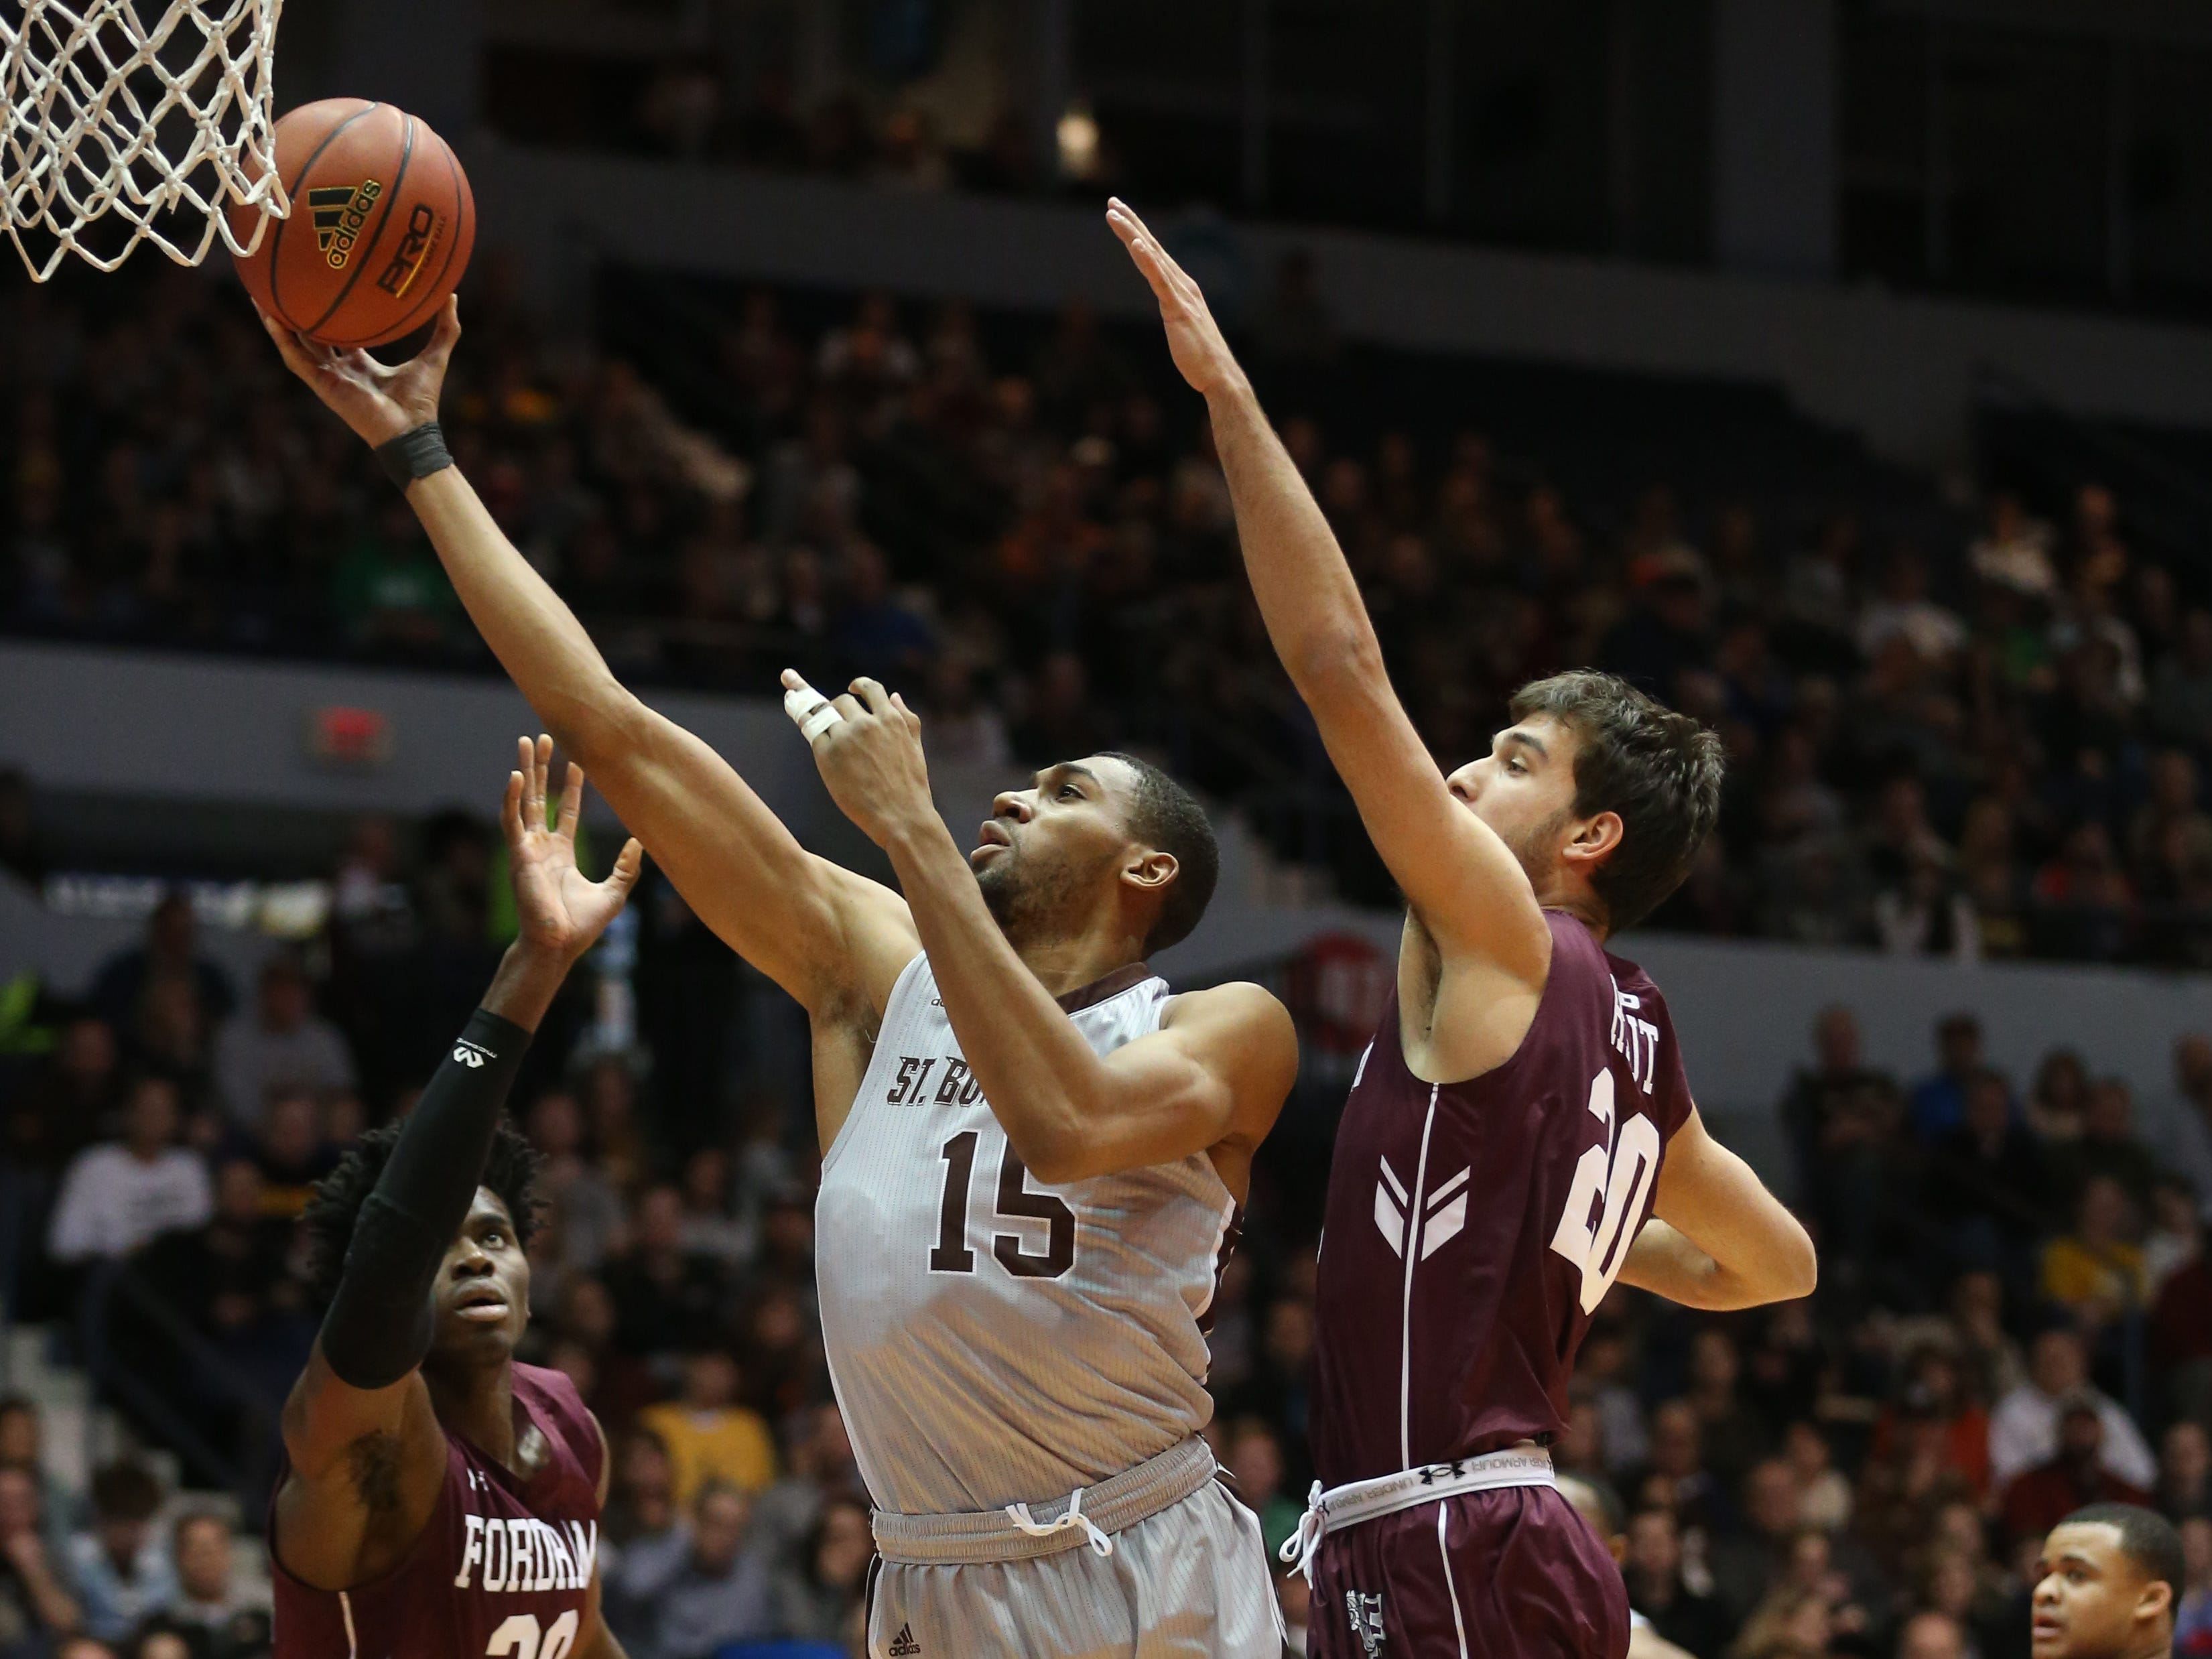 St. Bonaventure's LaDarien Griffin puts in two points between the defense of Fordham's Ivan Raut, right, and Onyi Eyisi, left.